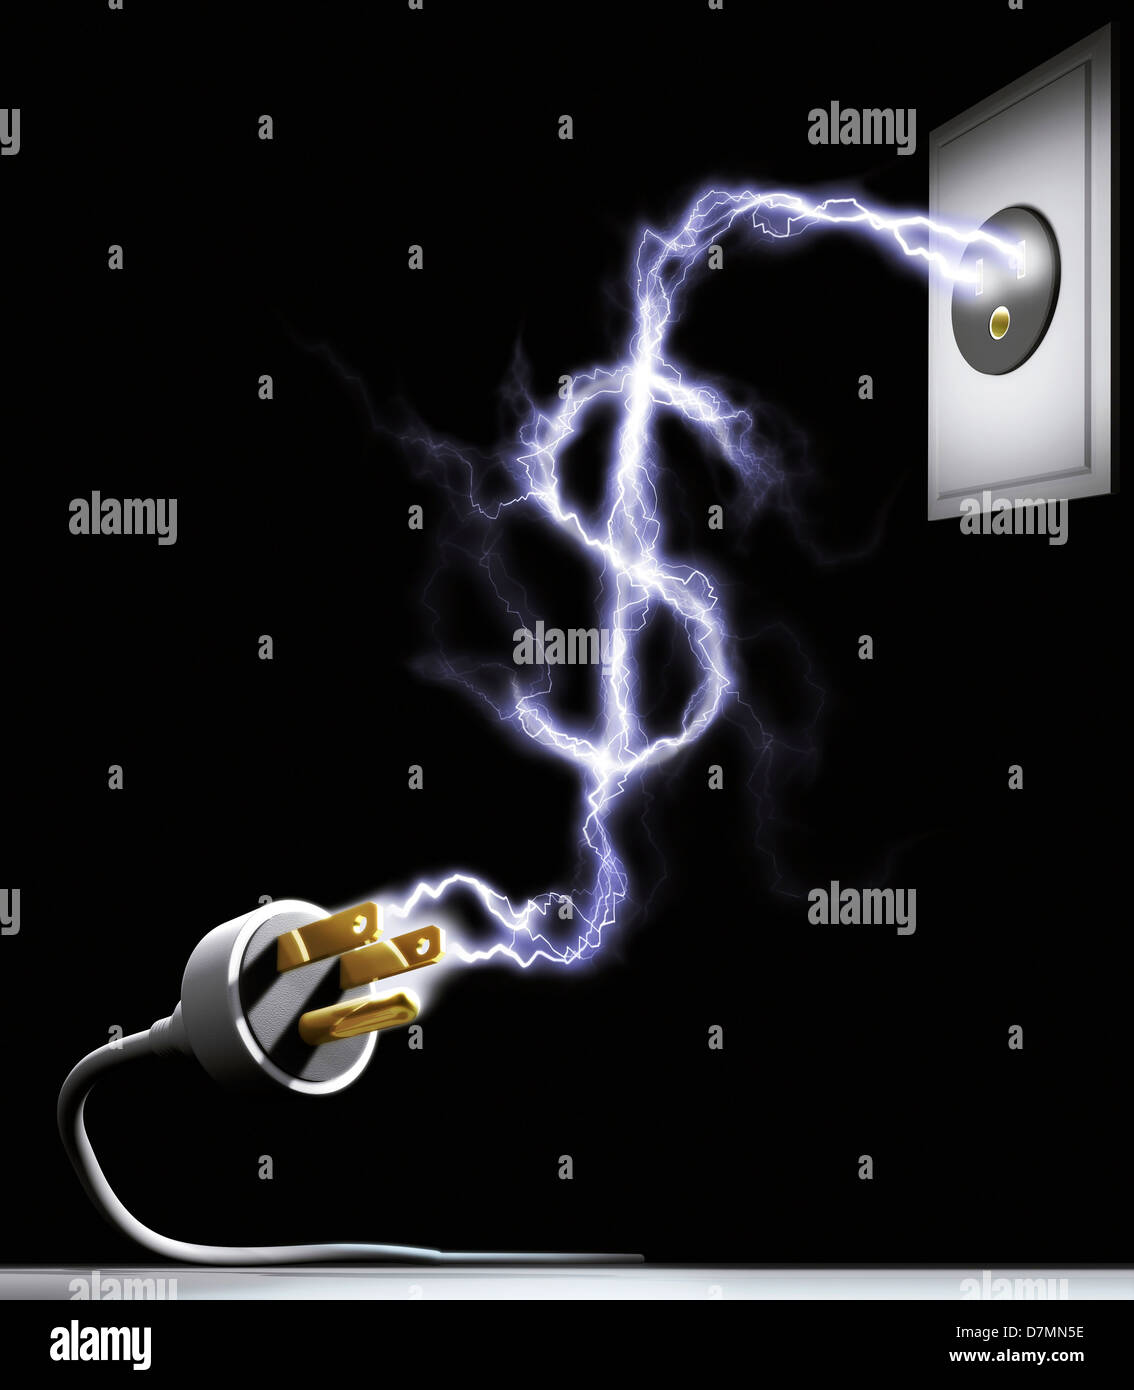 Cost of electricity, conceptual artwork - Stock Image